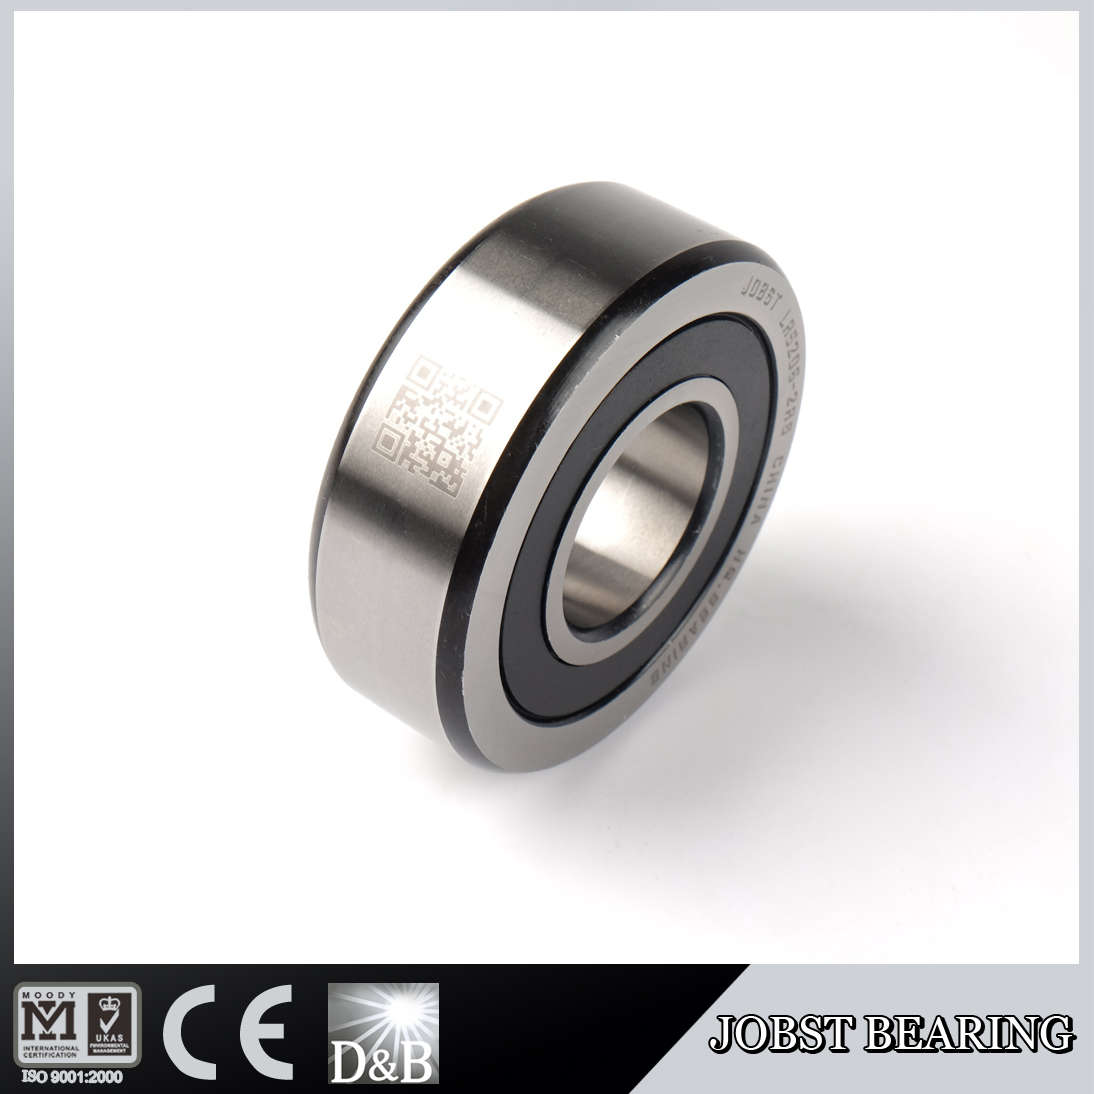 Quality Bearings Online - Deep Groove Bearings, Tapers,…